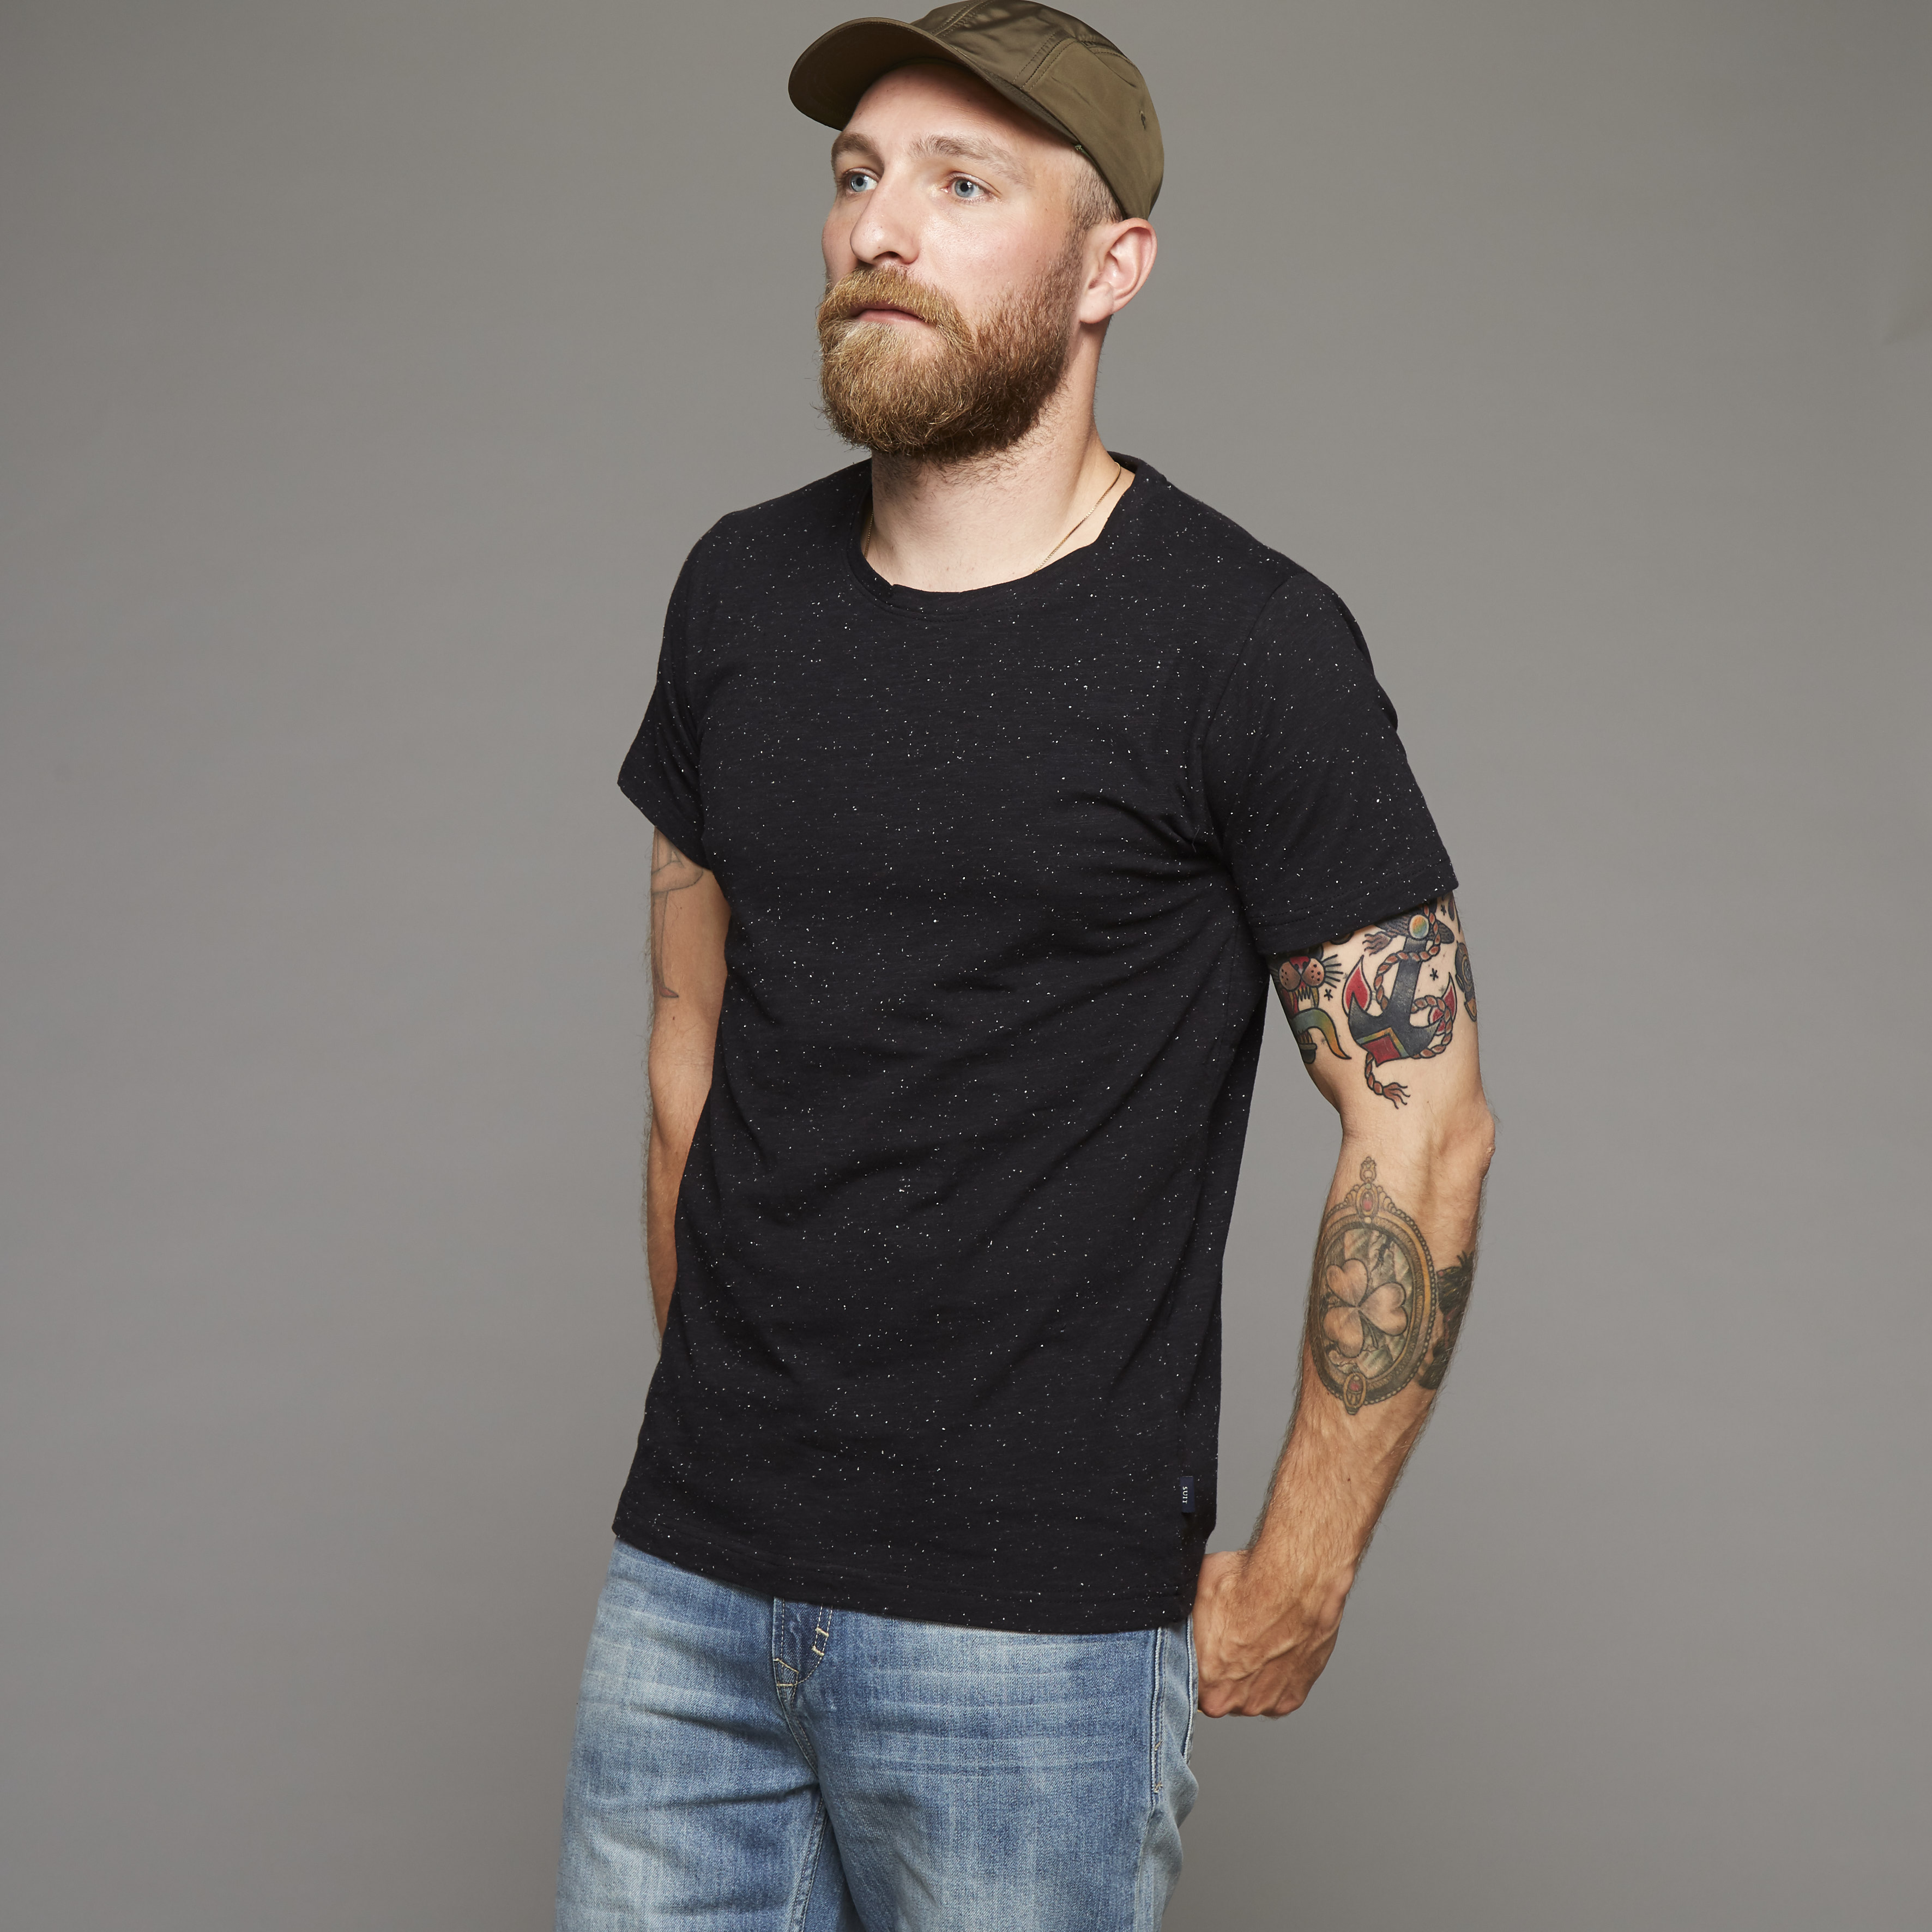 Suit Black Halifax T-shirt